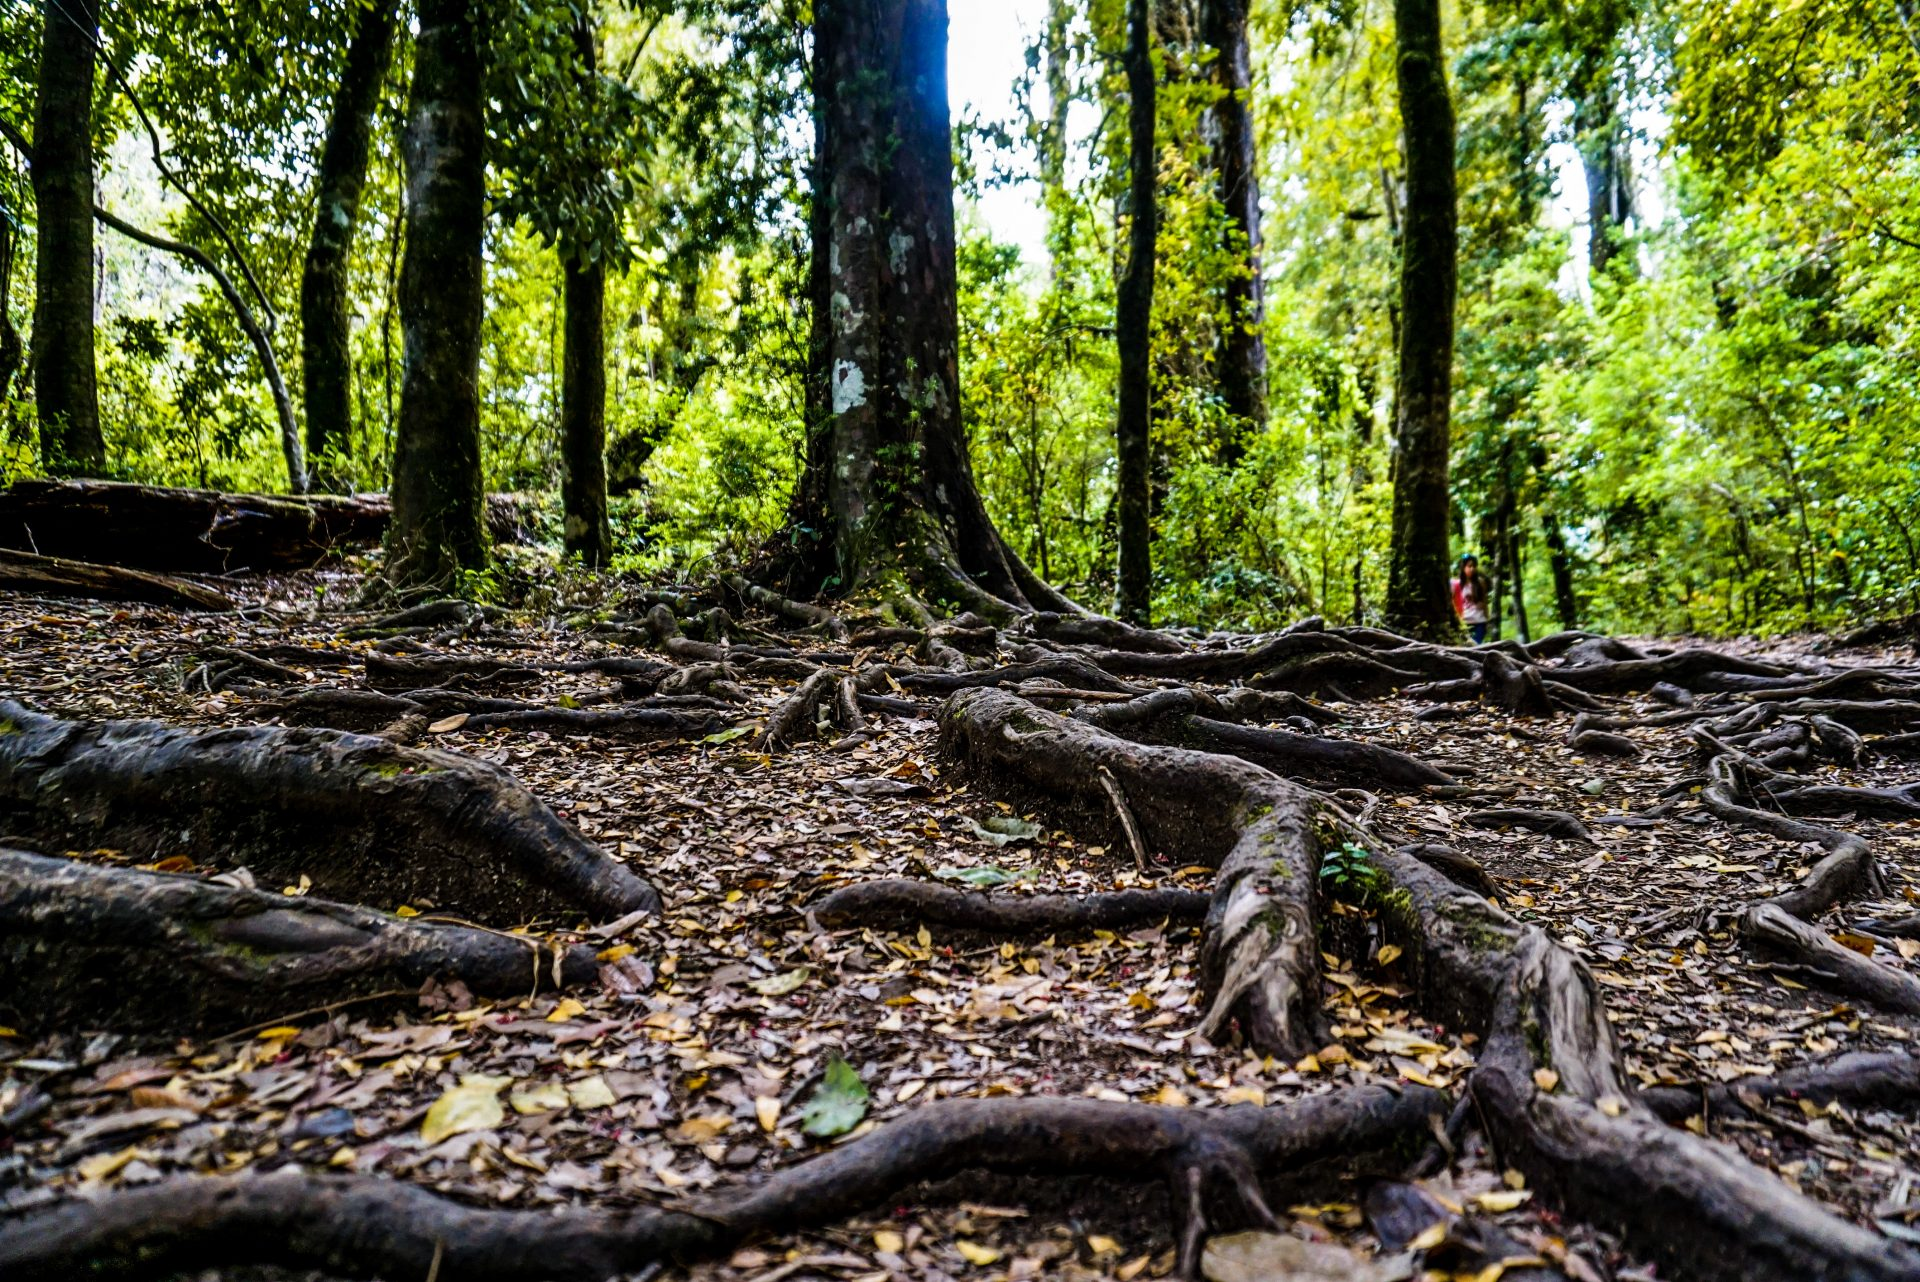 Forest in the Huilo Huilo reserve, Chile - Experiencing the Globe